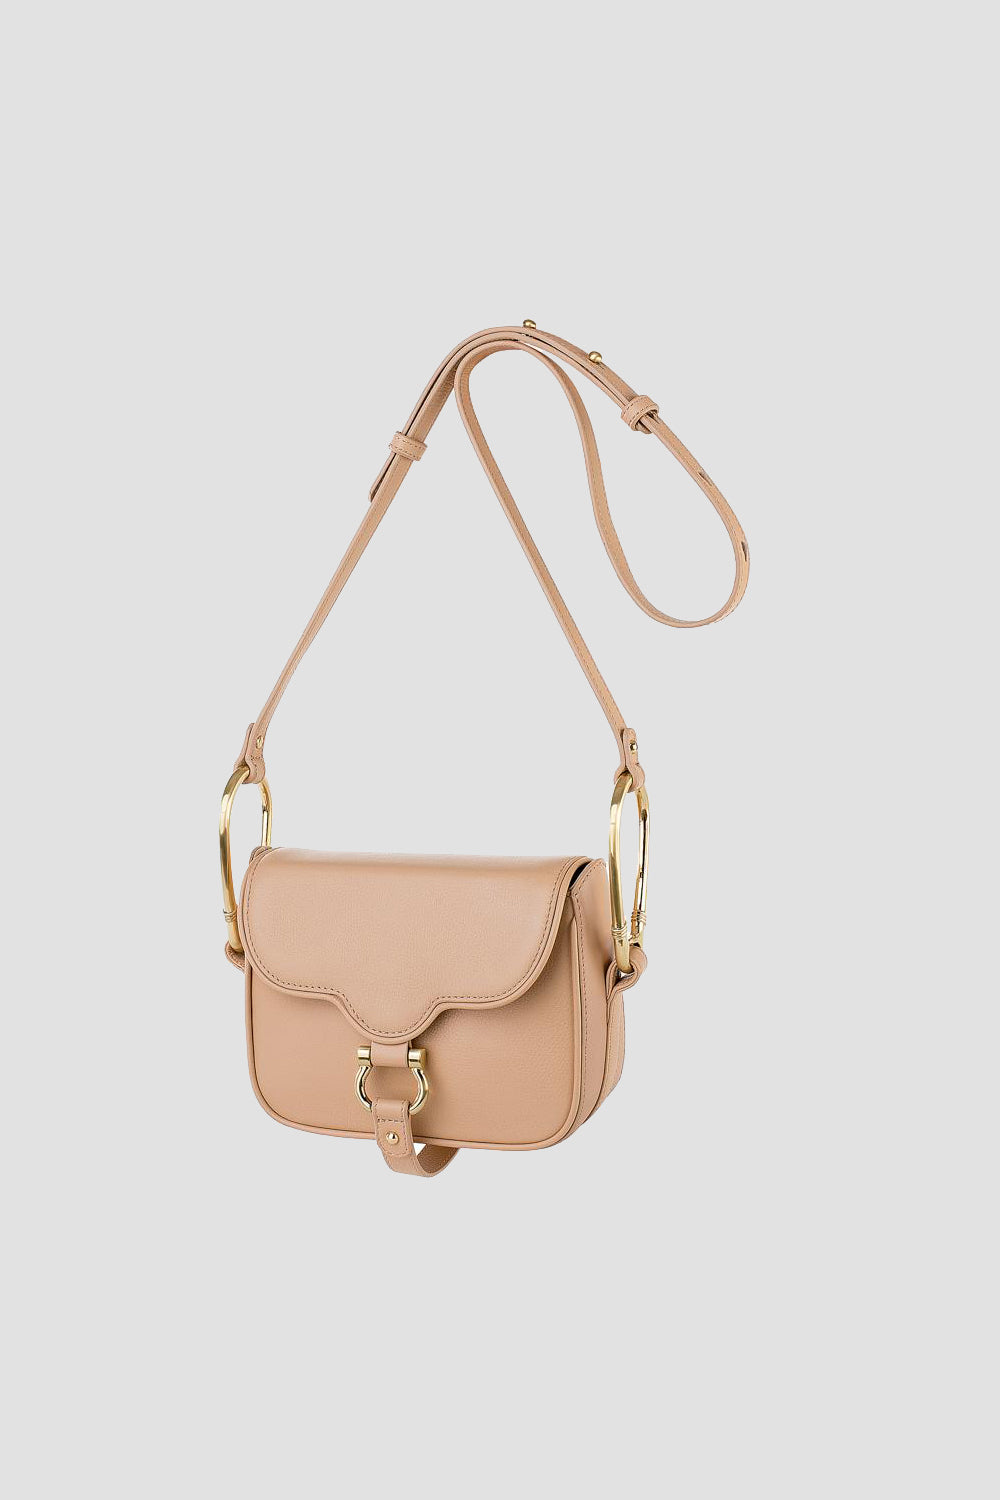 SANCIA - The Gigi Mini Bag online at PAYA boutique